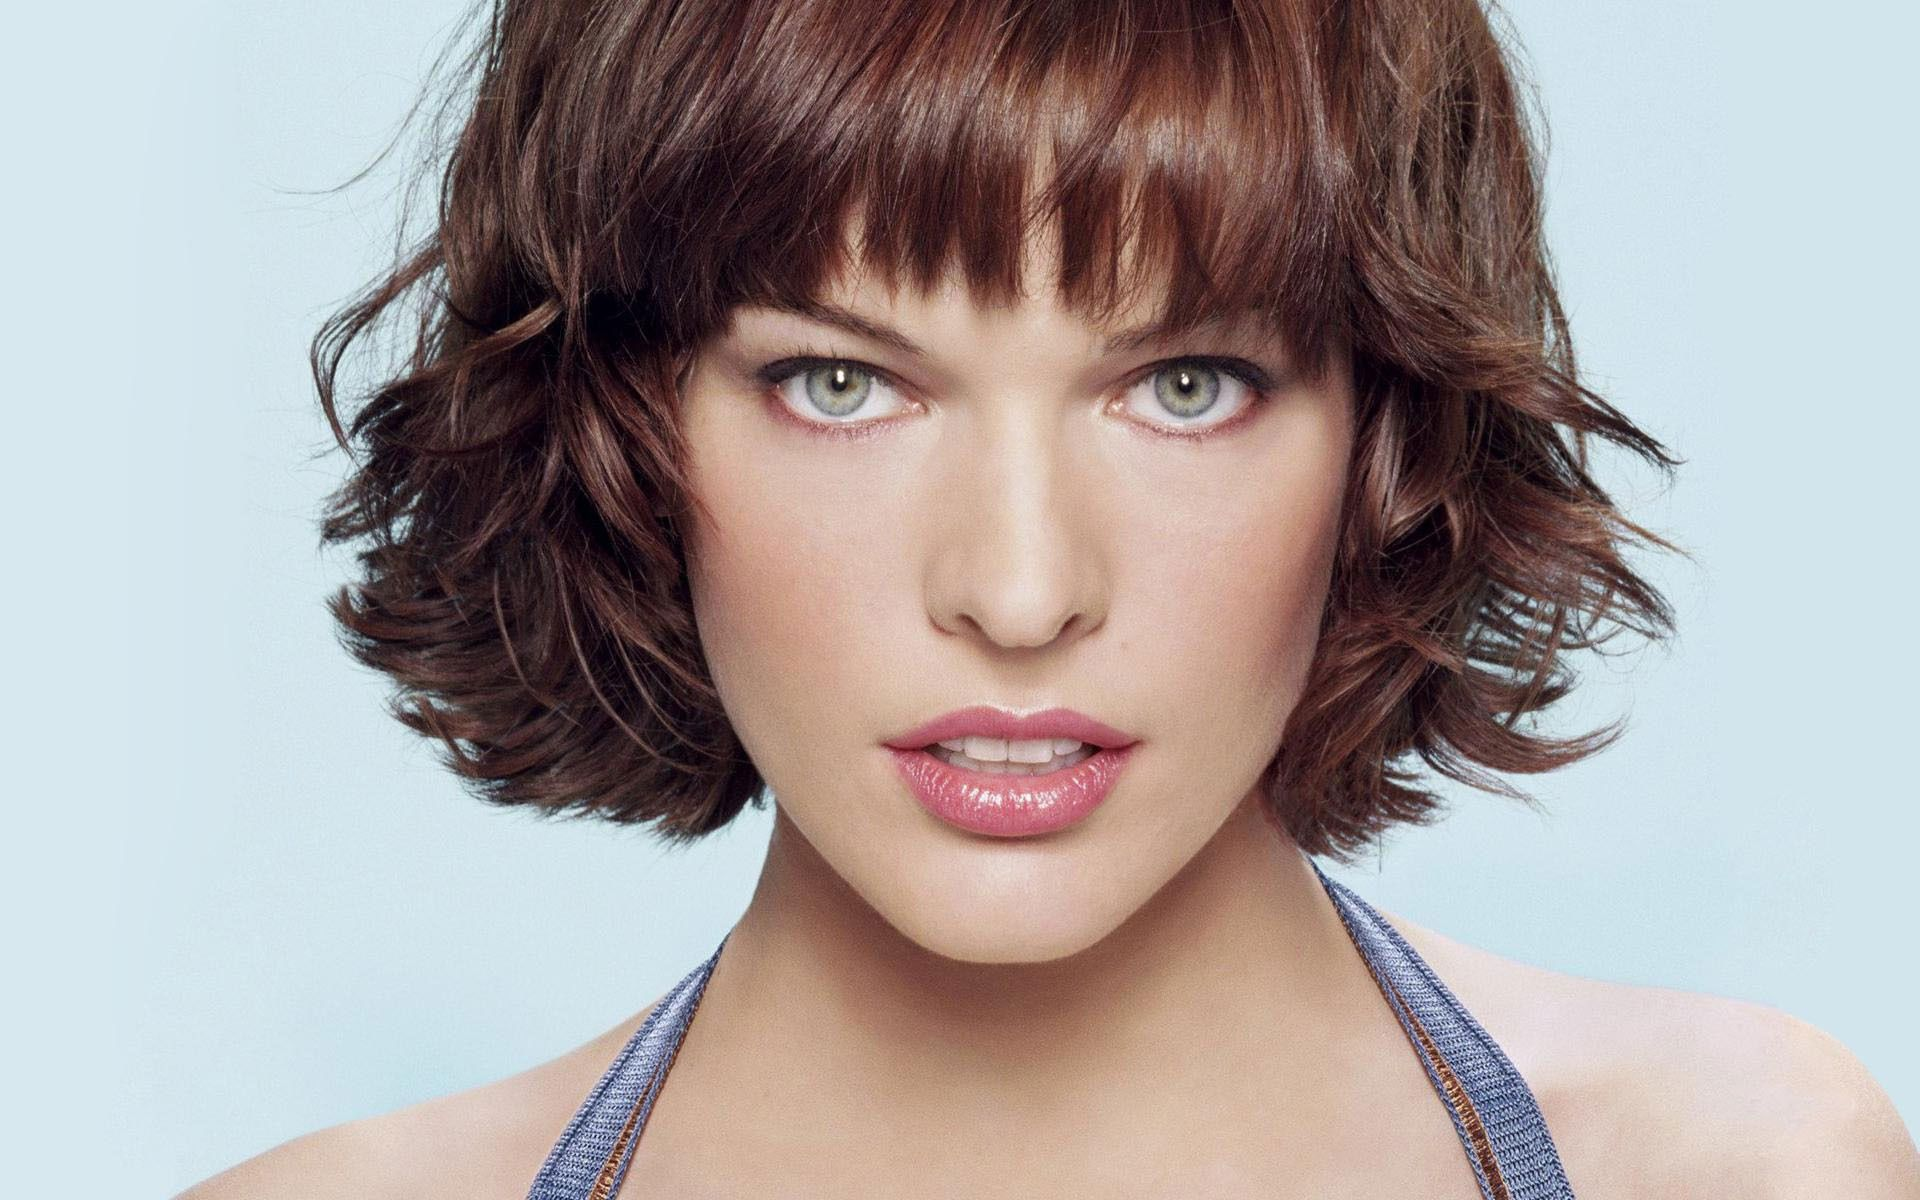 milla jovovich wikimilla jovovich film, milla jovovich young, milla jovovich wiki, milla jovovich movies, milla jovovich interview, milla jovovich resident evil, milla jovovich purple fashion, milla jovovich facebook, milla jovovich husband, milla jovovich imdb, milla jovovich vogue, milla jovovich 1997, milla jovovich рост, milla jovovich фильмы, milla jovovich russian, milla jovovich – my pass, milla jovovich site, milla jovovich songs, milla jovovich биография, milla jovovich wallpaper hd